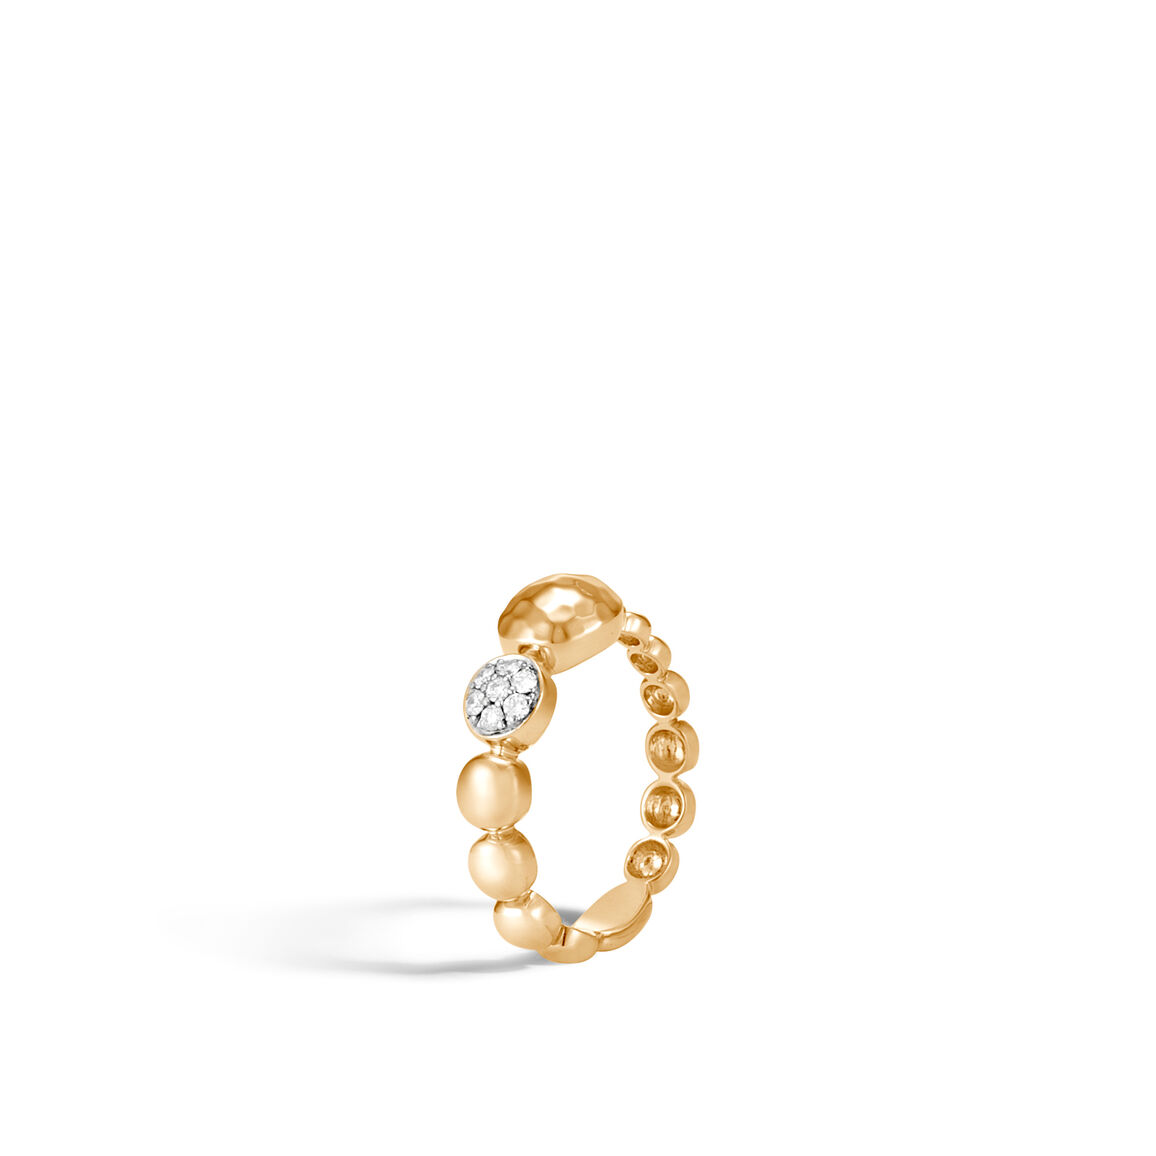 Dot Ring in Hammered 18K Gold with Diamonds